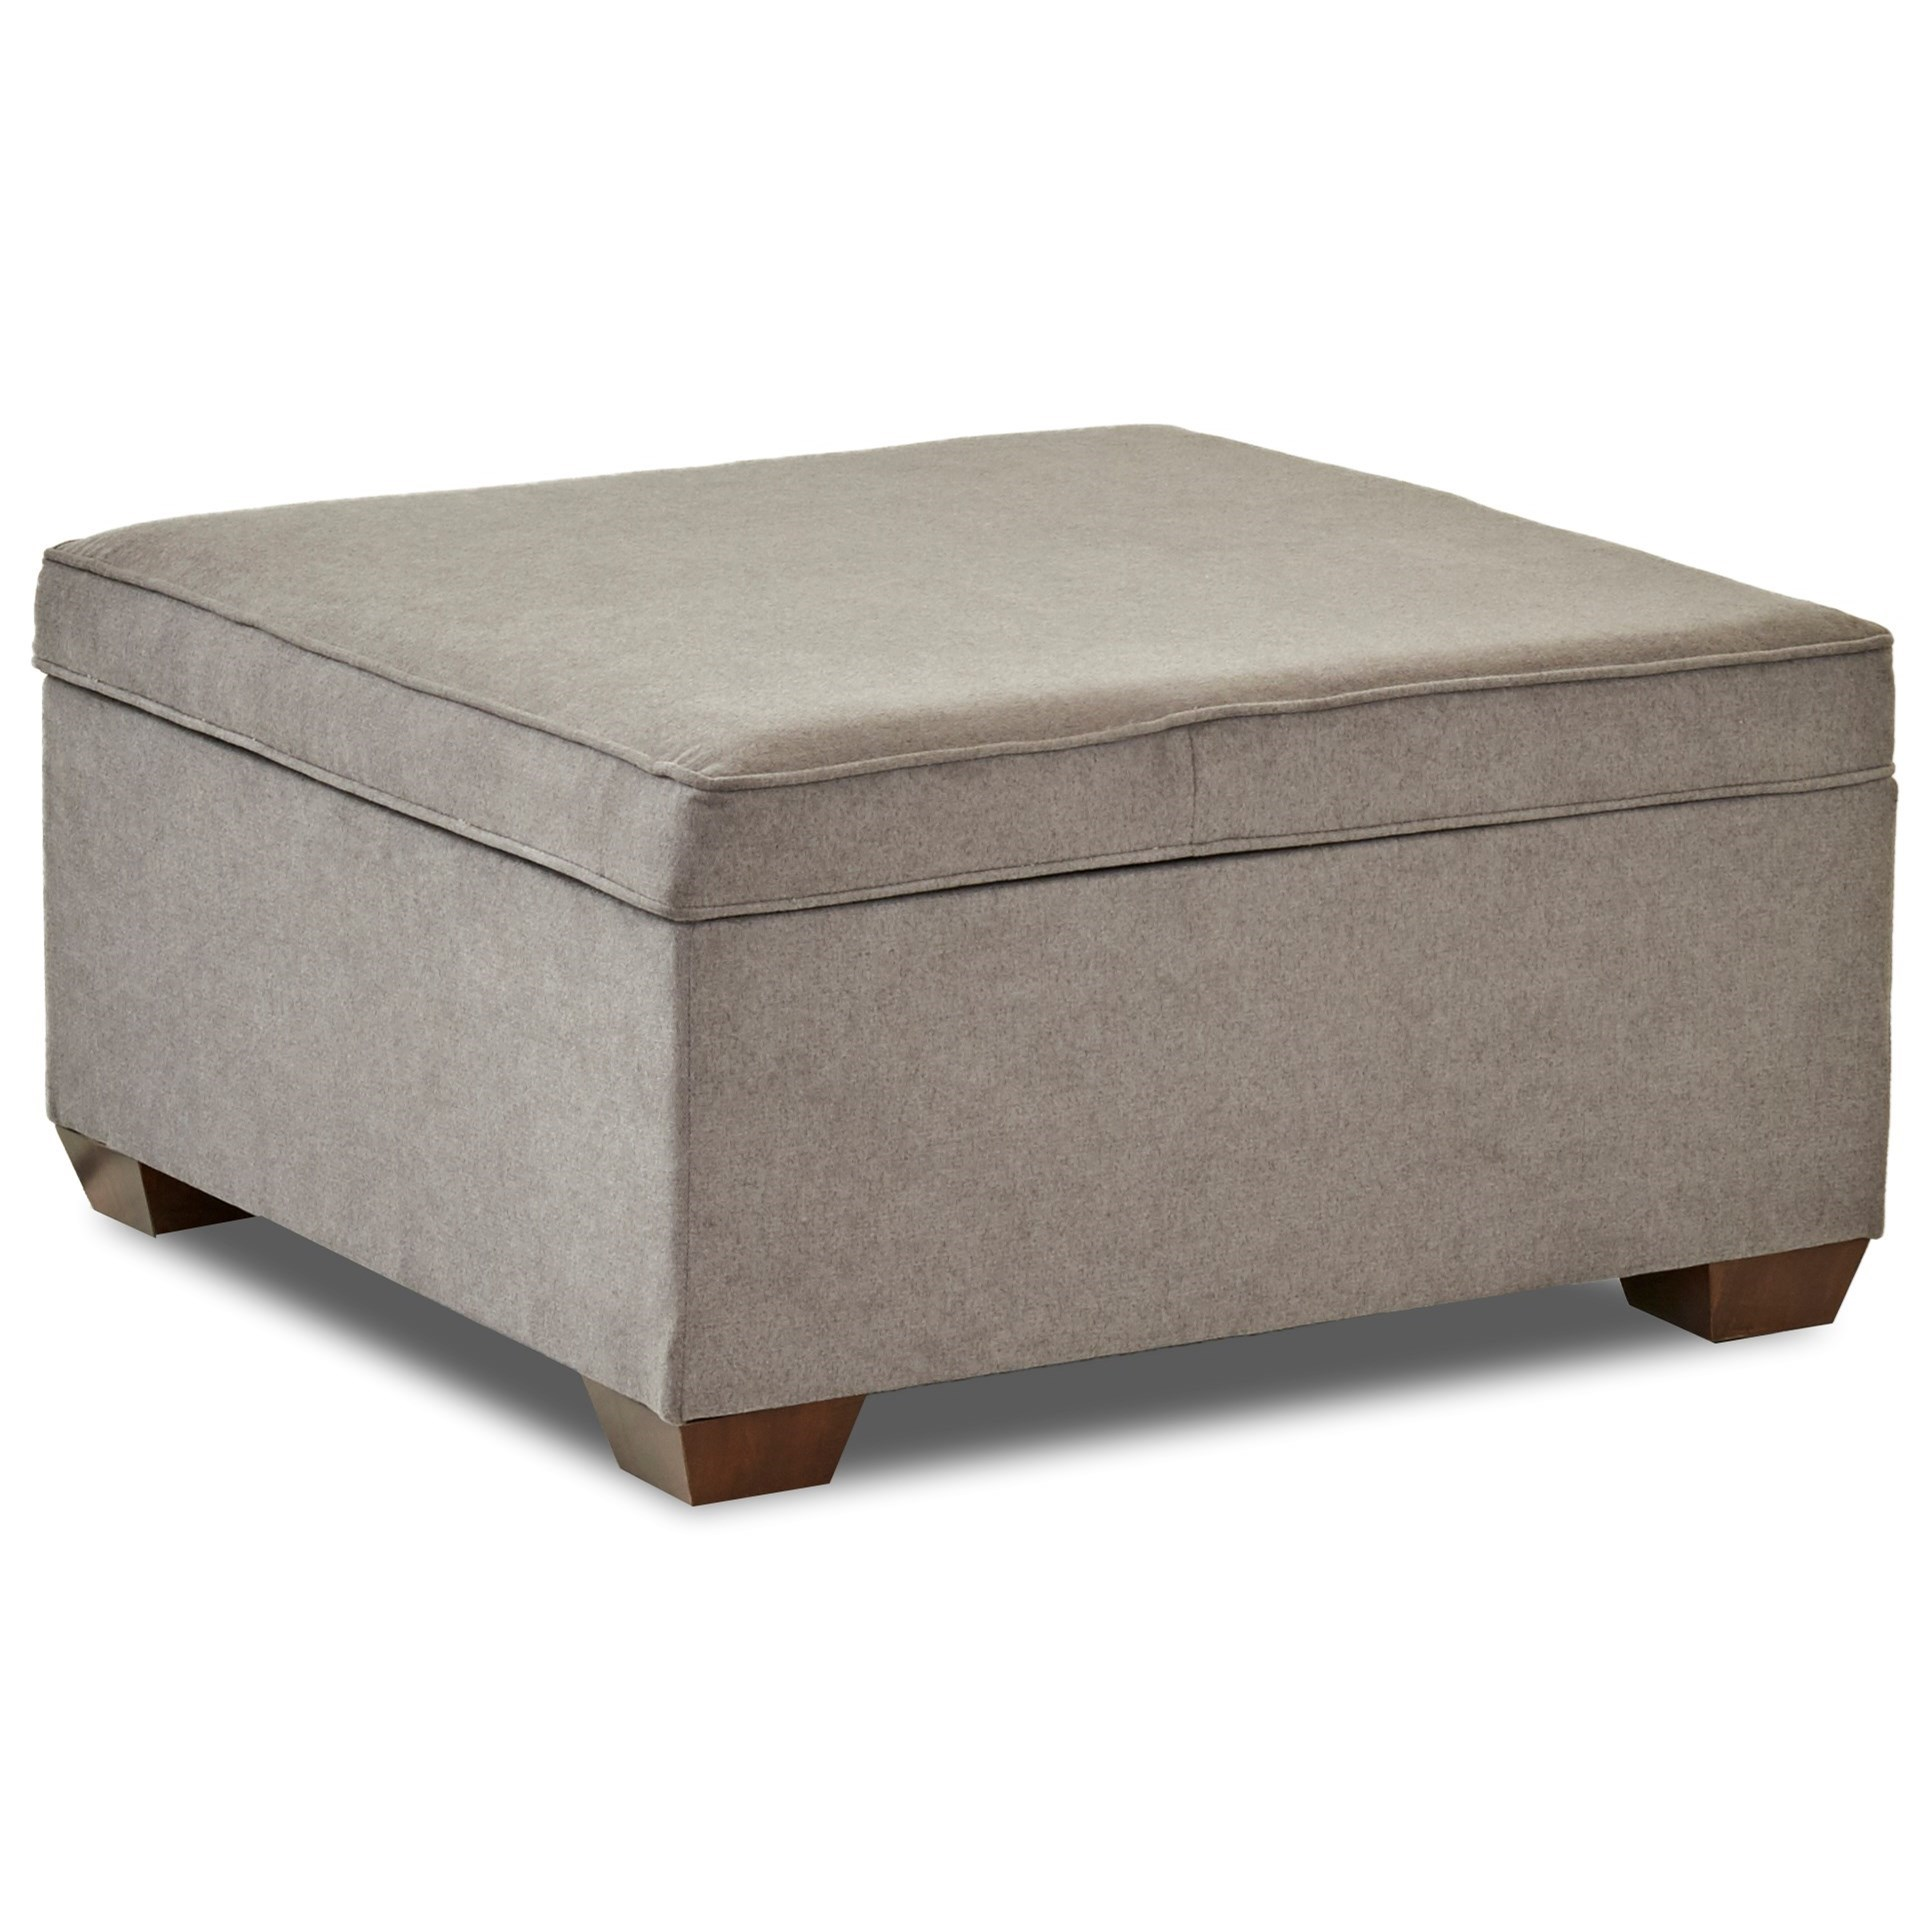 Hybrid Square Cocktail Storage Ottoman by Klaussner at Northeast Factory Direct